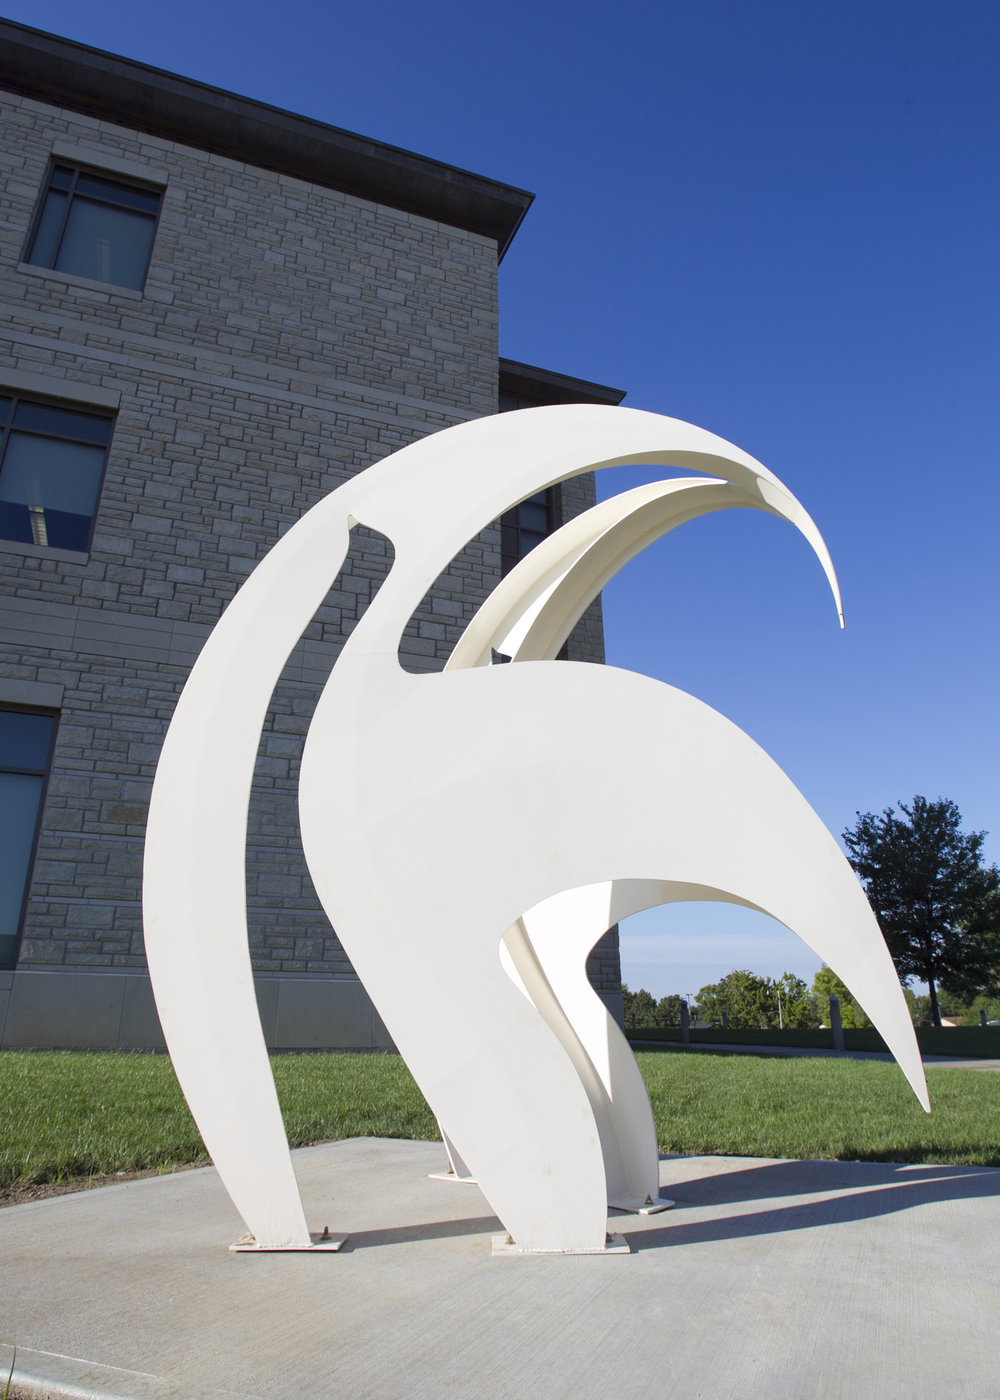 Fantasy  1985, painted steel, 9.5 x 8 x 6 feet  Installed in 2011 at University of Central Missouri, Warrensburg, MO